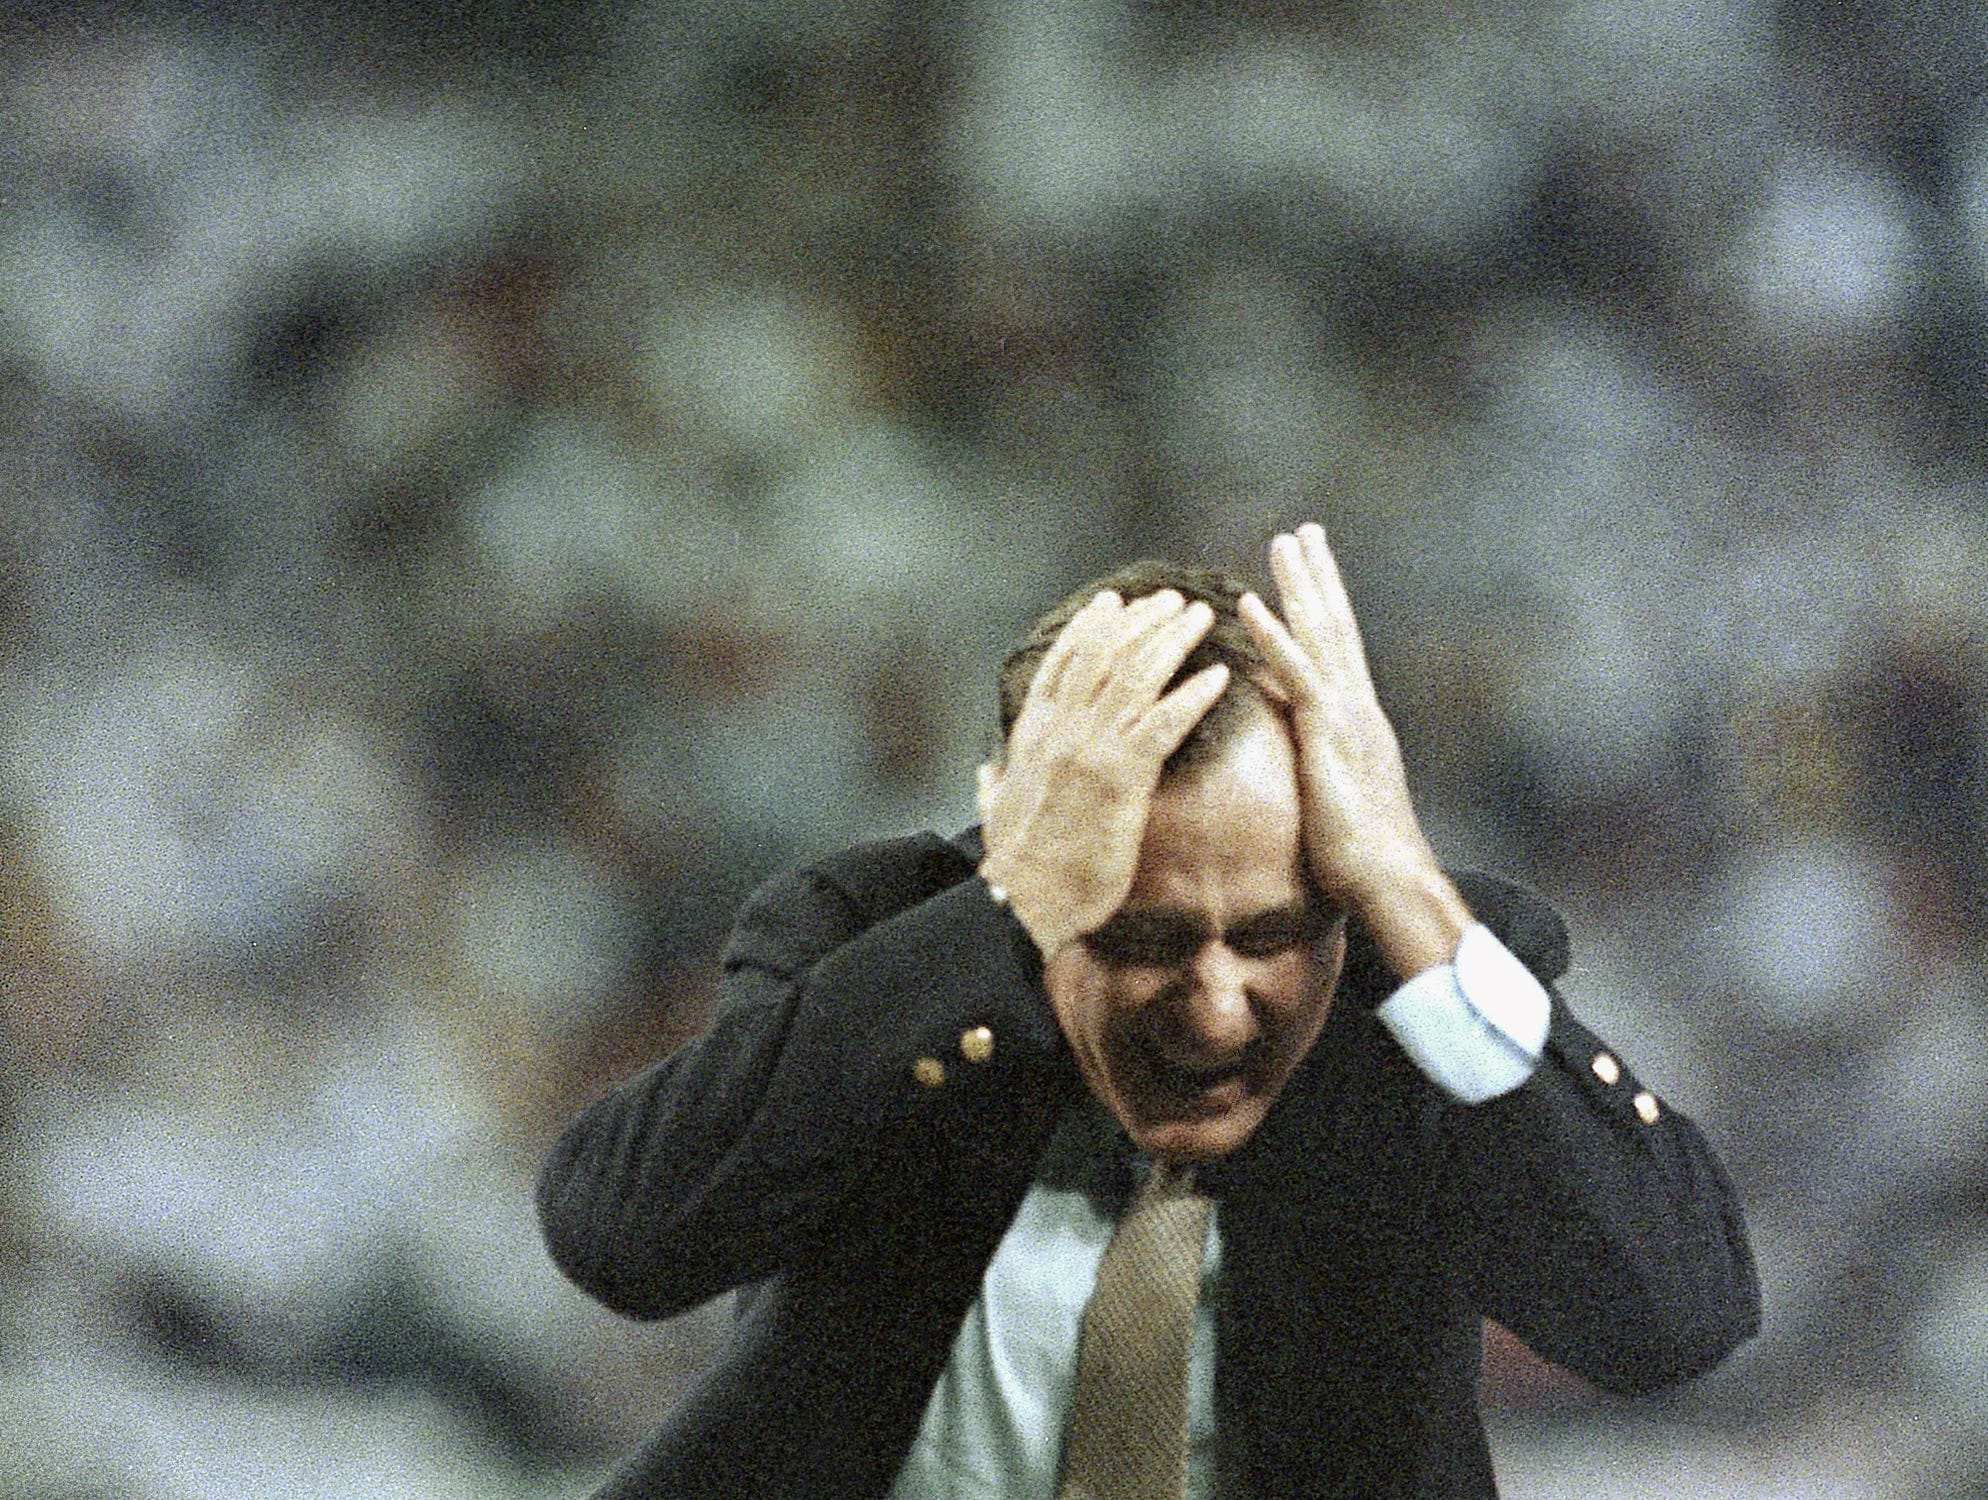 Vice President George H. W. Bush reacts to his bouncing pitch during pre game ceremonies of the National League playoff game, Wednesday, Oct. 8, 1986, Houston, Tex. (AP Photo/Ron Heflin)